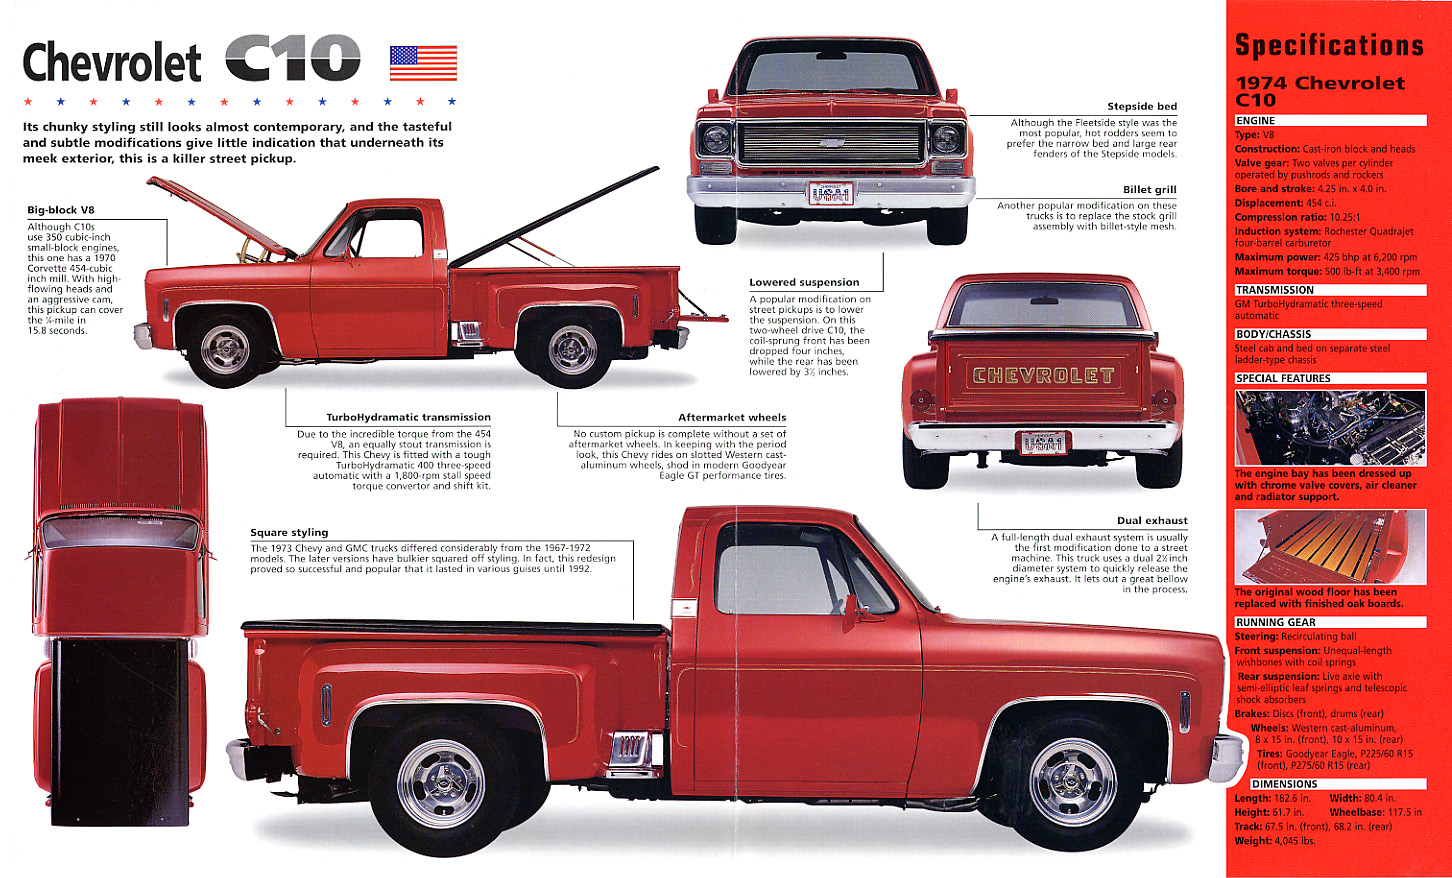 All Chevy 74 chevy short bed : hot_haulers02.jpg 1,452×878 pixeles | Chevy | Pinterest ...